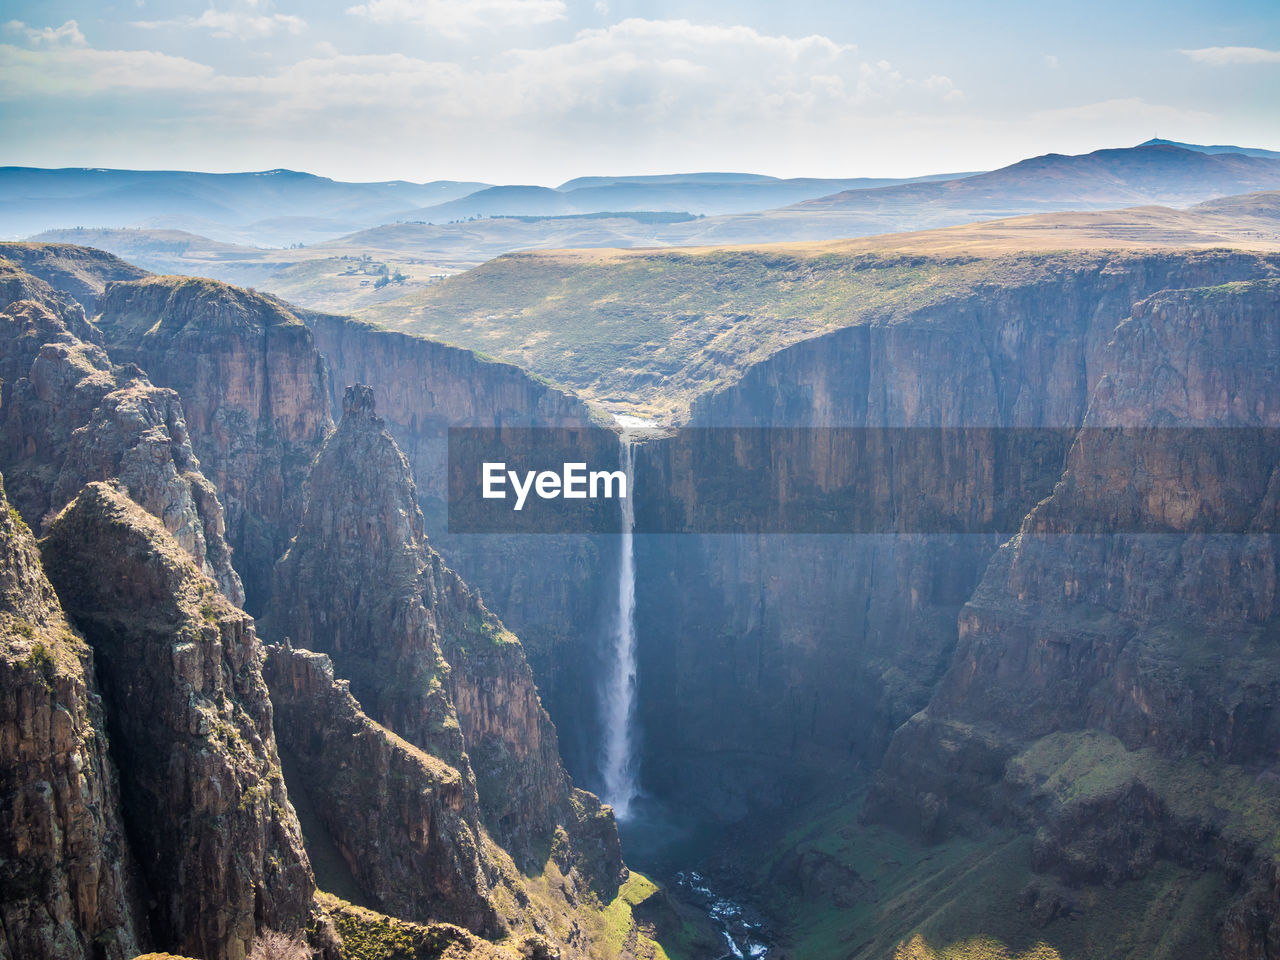 Panoramic view of maletsunyane waterfall against dramatic sky, semonkong, lesotho, africa